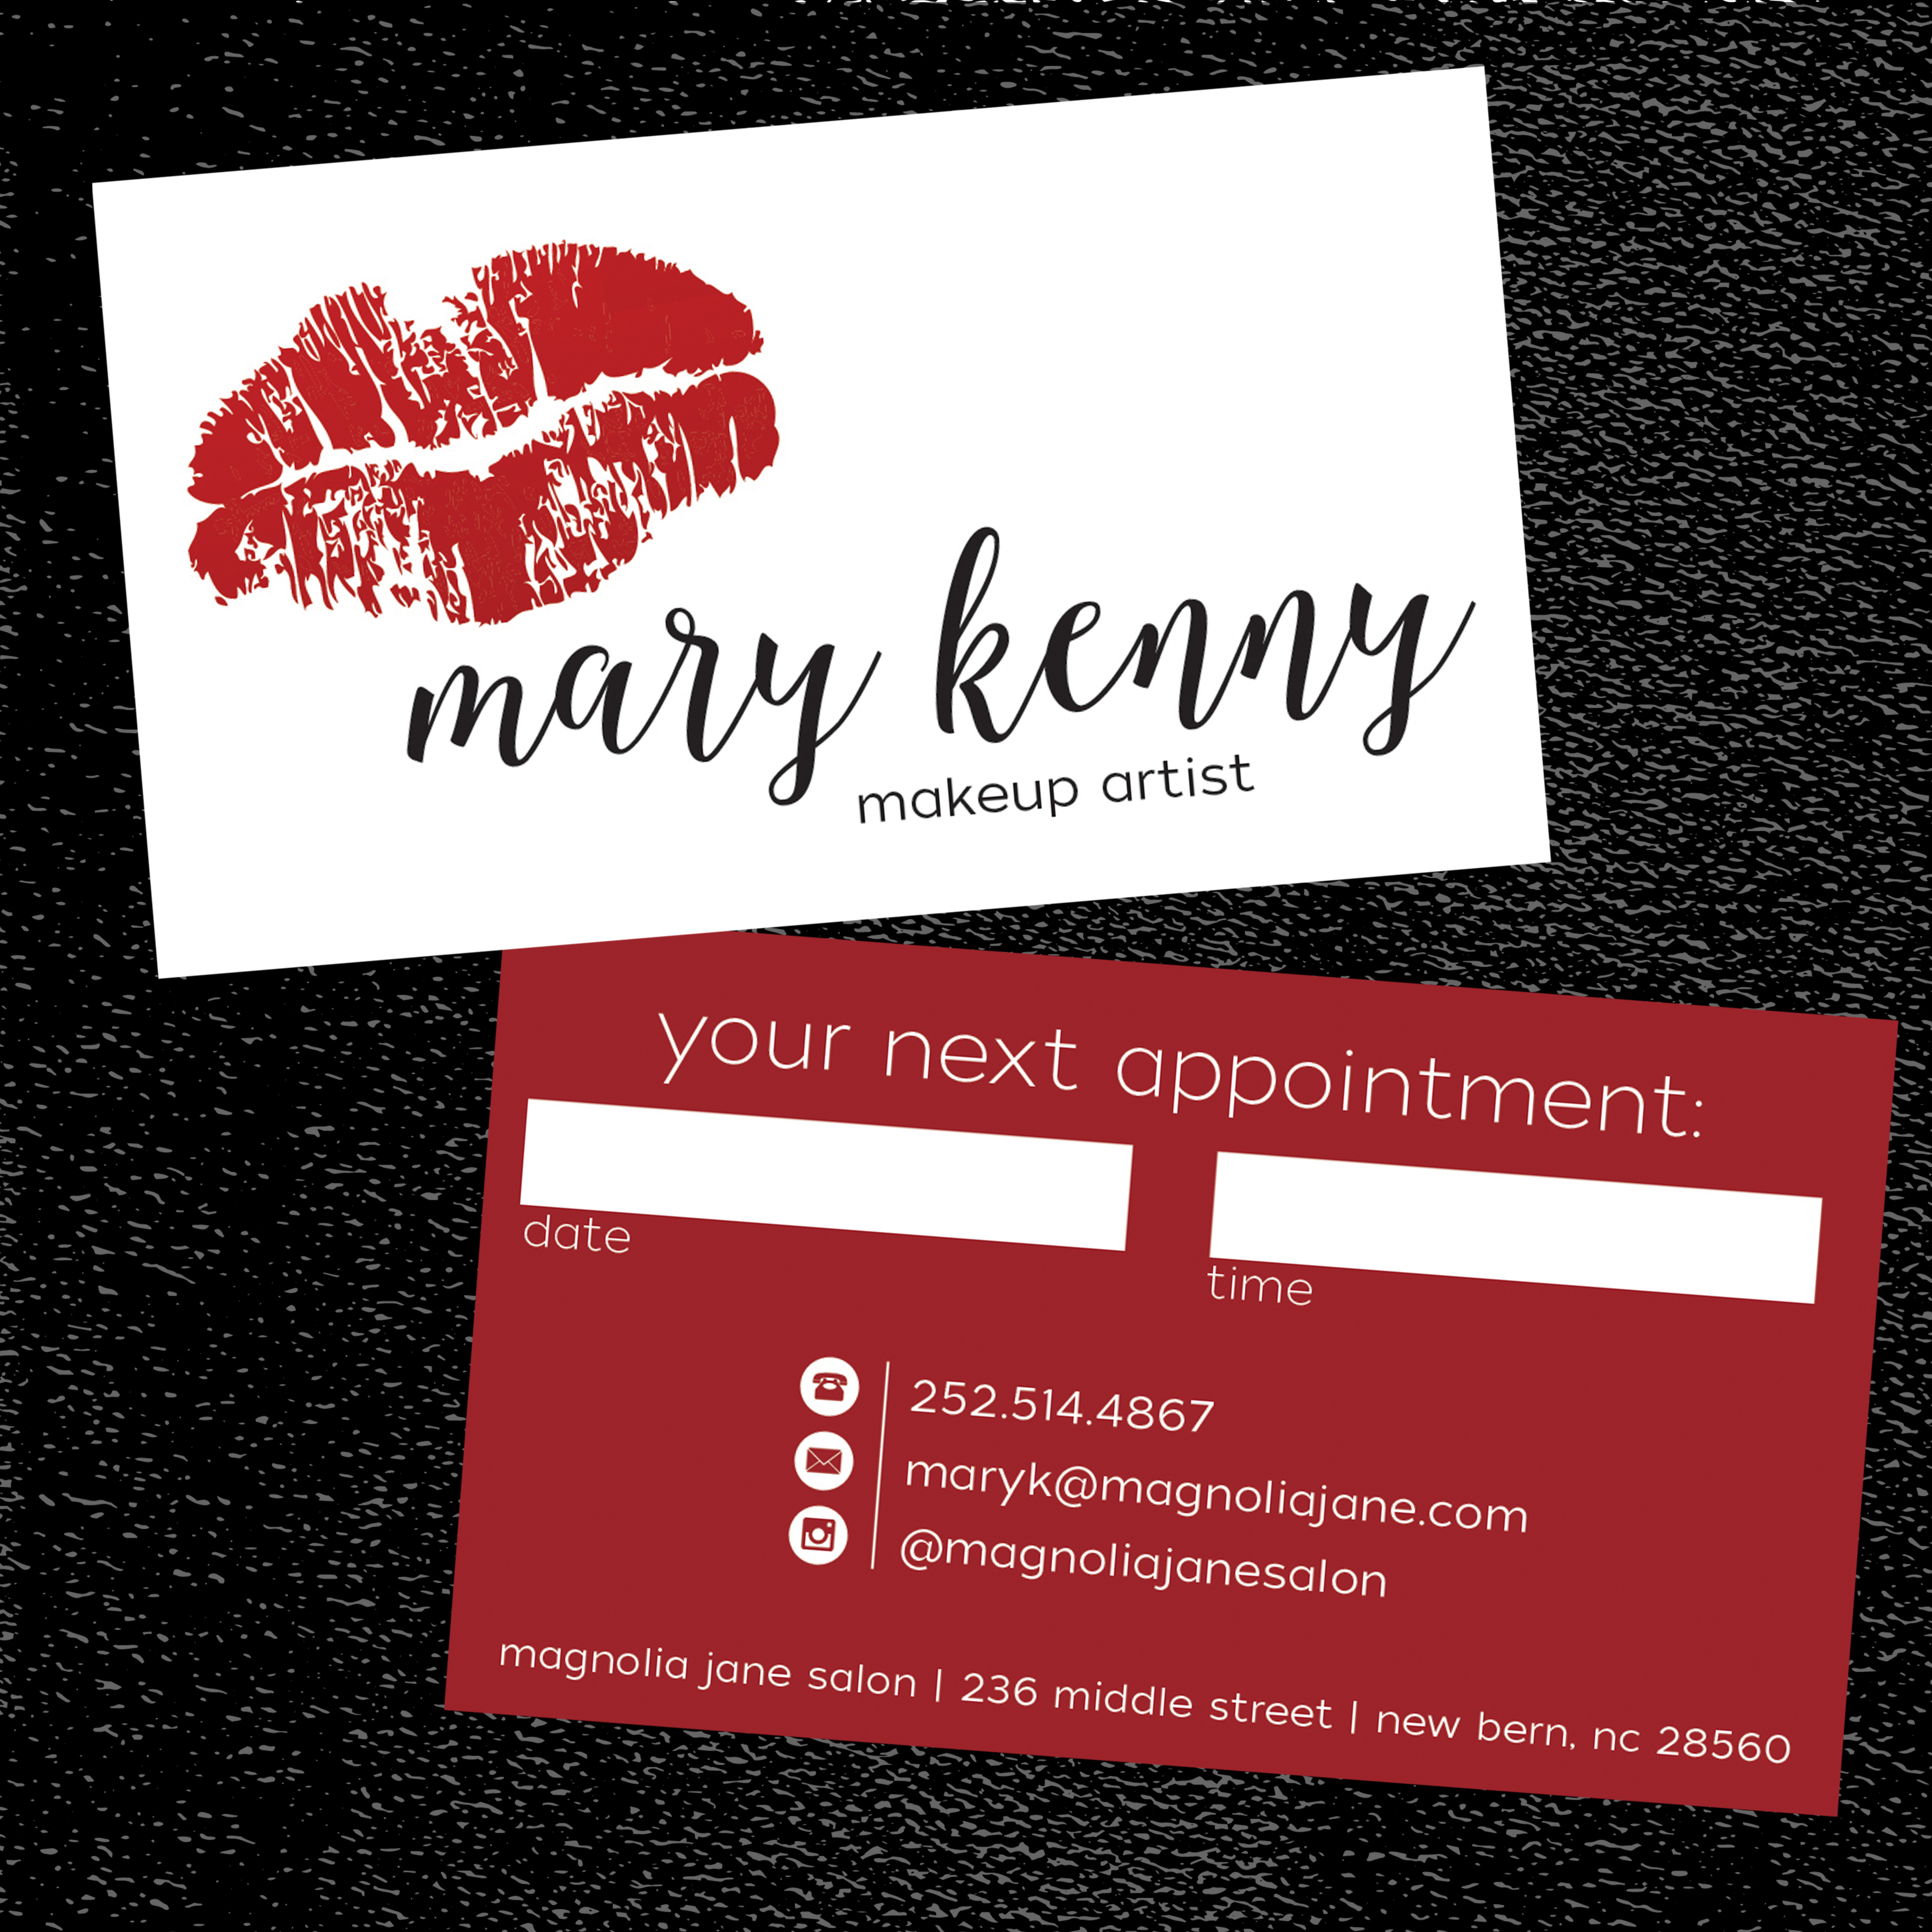 Business cards hair and makeup image collections card design and wonderful hair and makeup business cards ideas business card ideas business cards hair and makeup images colourmoves Images